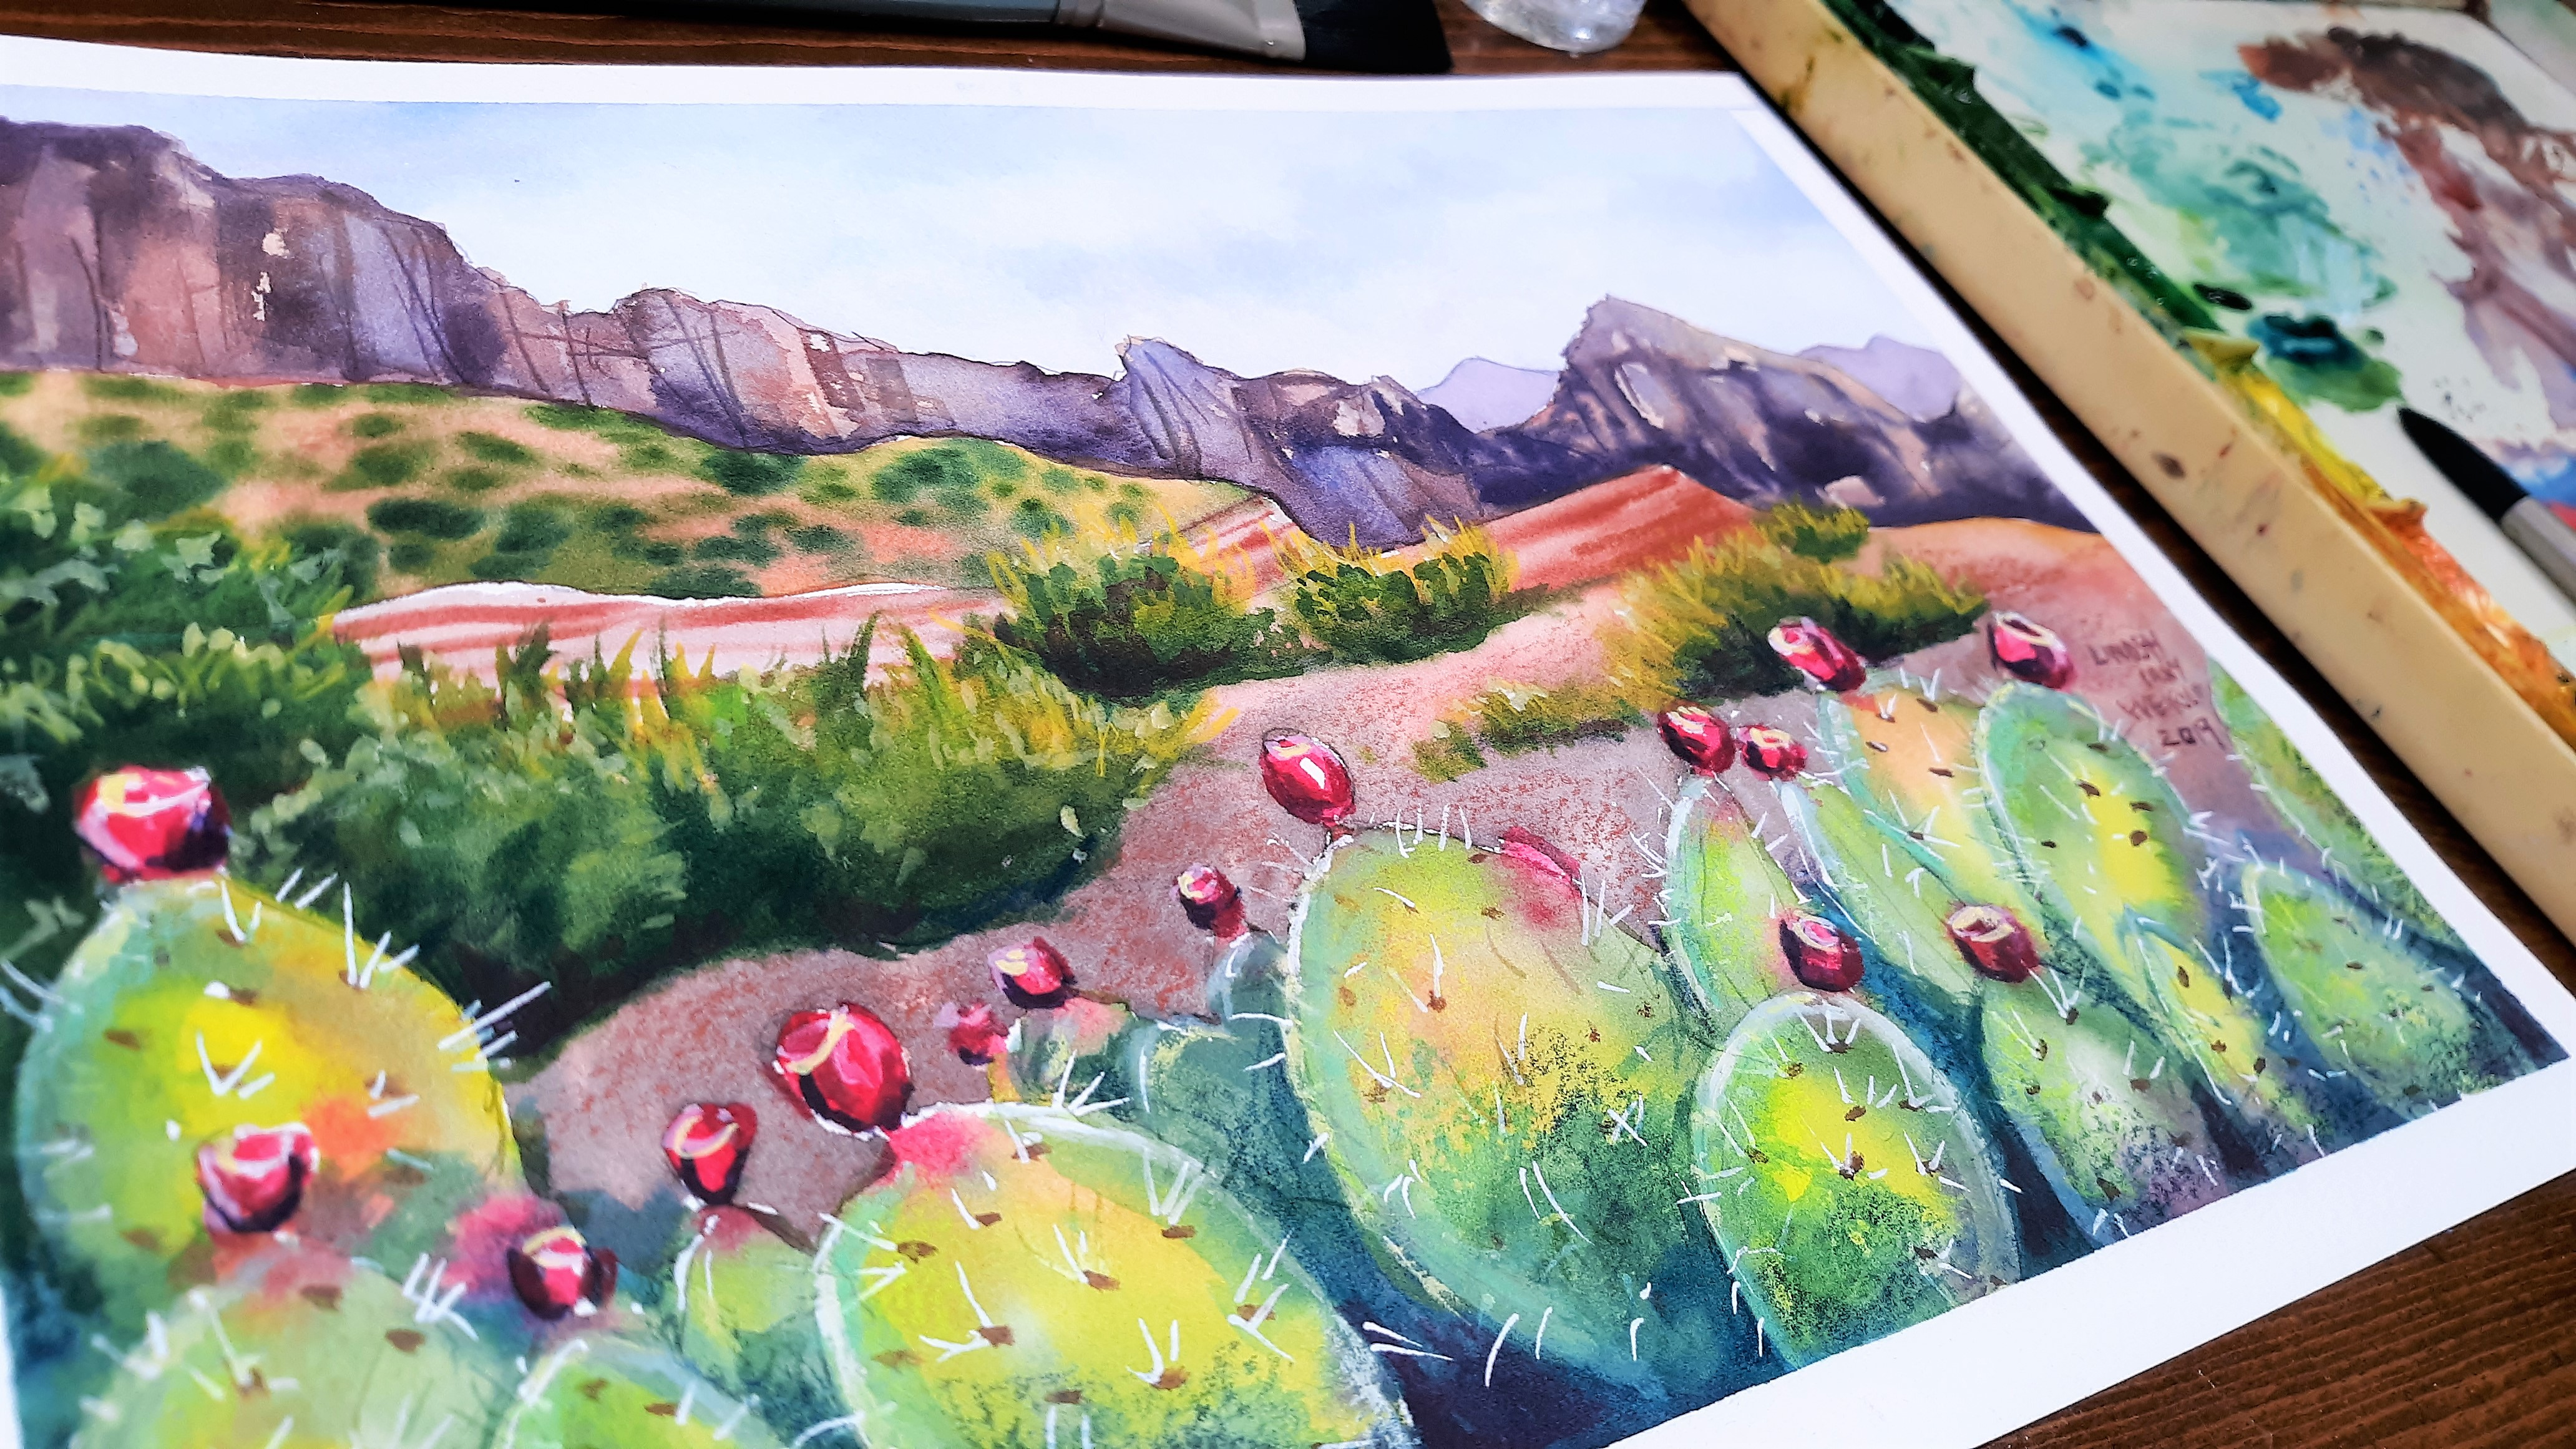 Chat with me LIVE at 5pm and Paint a Pretty Landscape!